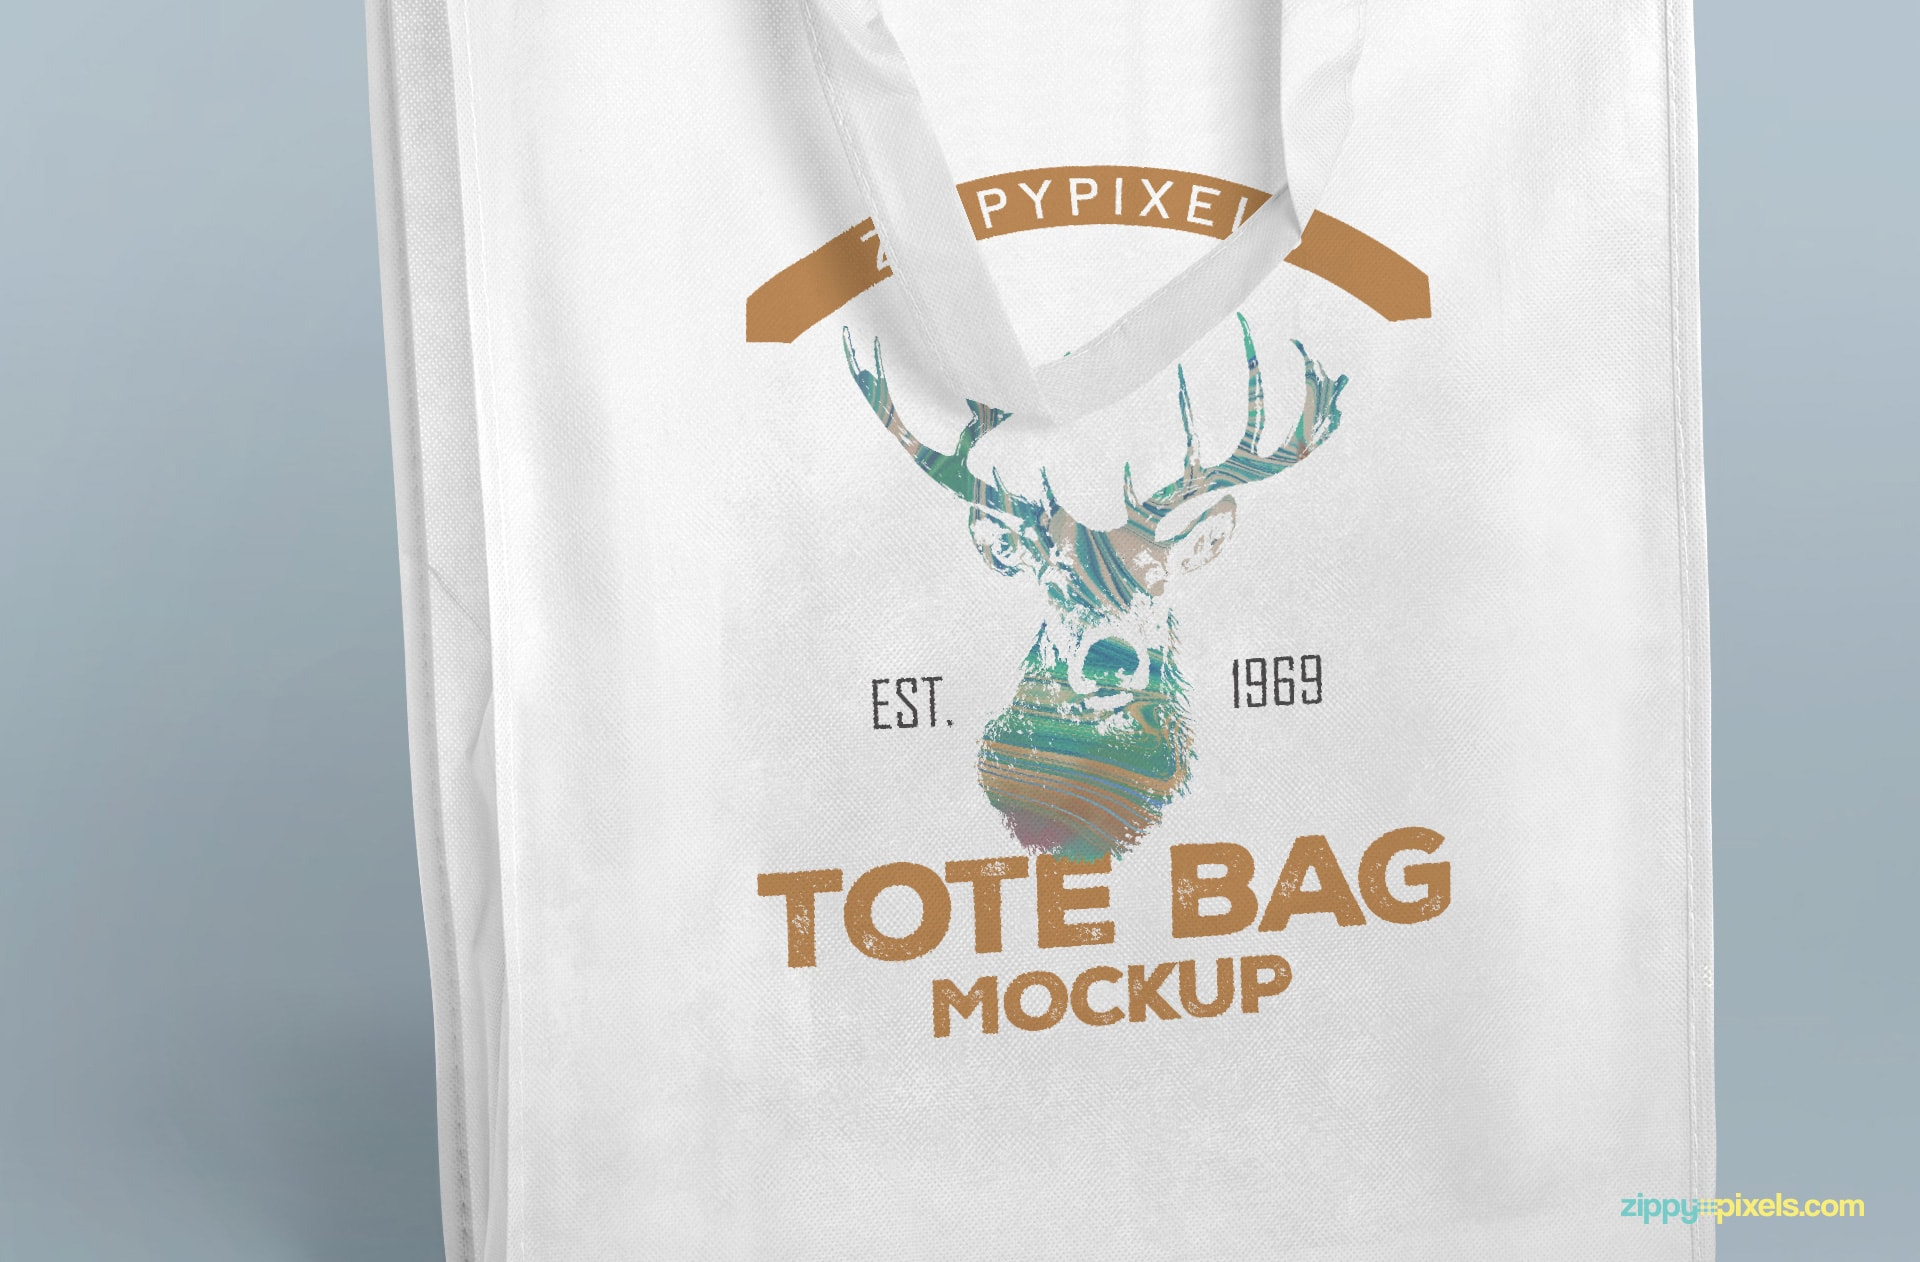 Showcase your designs on this free tote bag.